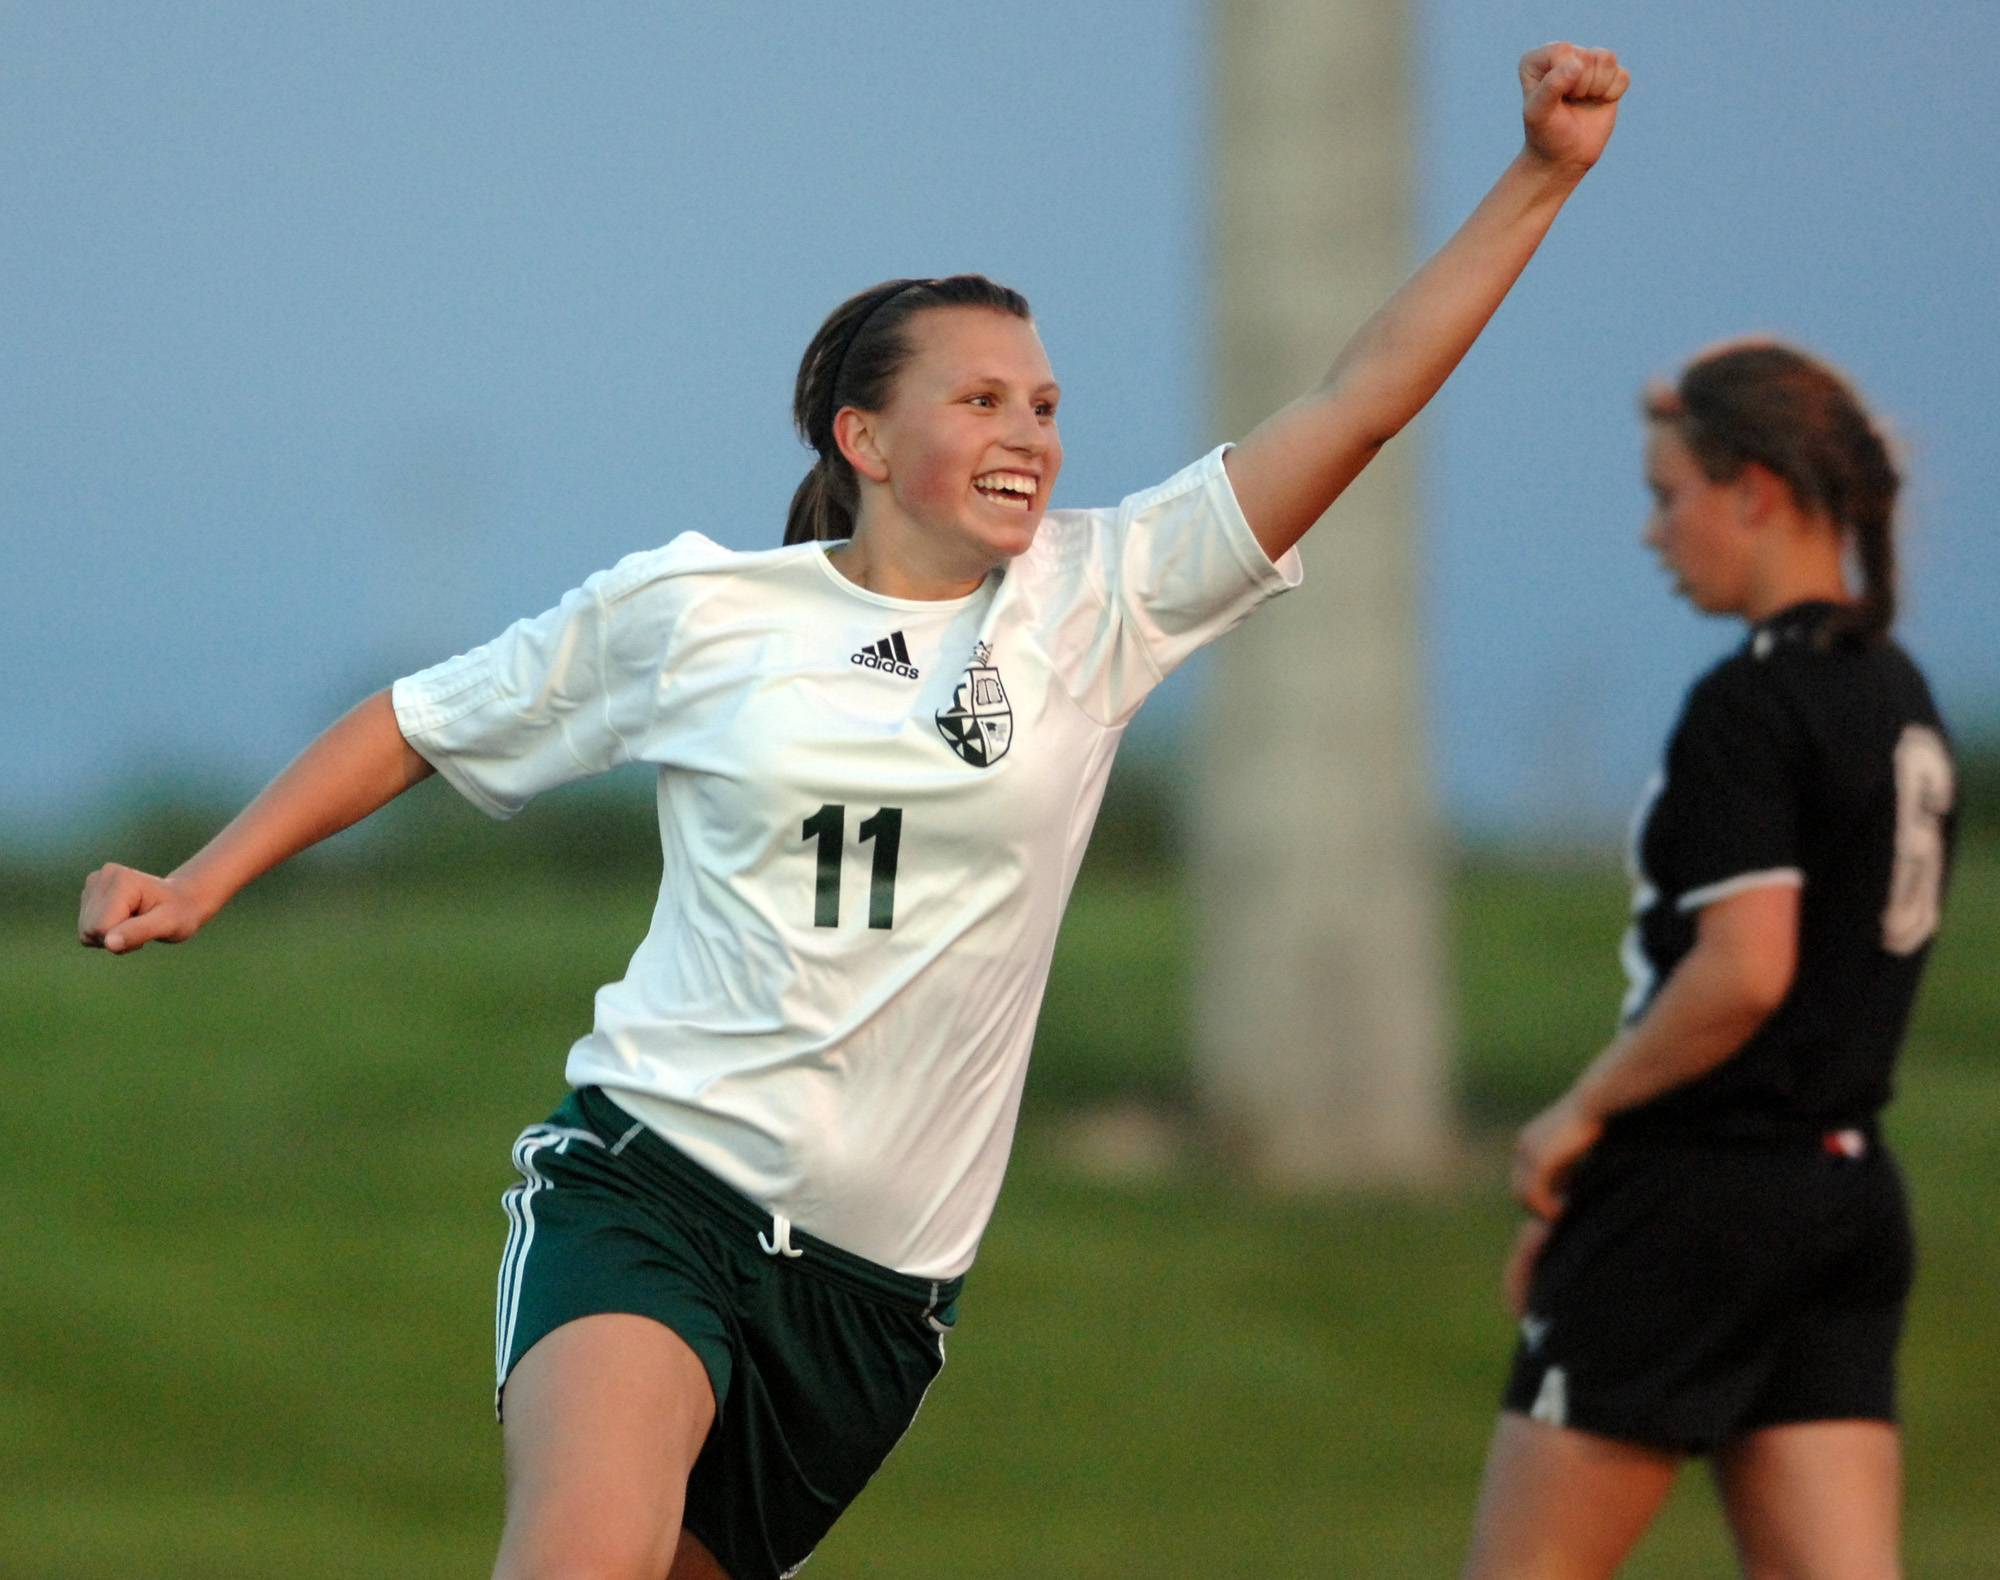 St. Edward's Allison Kruk celebrates the first of two first-half goals against Stillman Valley last year in a Class 1A sectional semifinal game in Harvard. St. Edward opens the postseason Tuesday against Elgin Academy at the Westminster Christian regional.